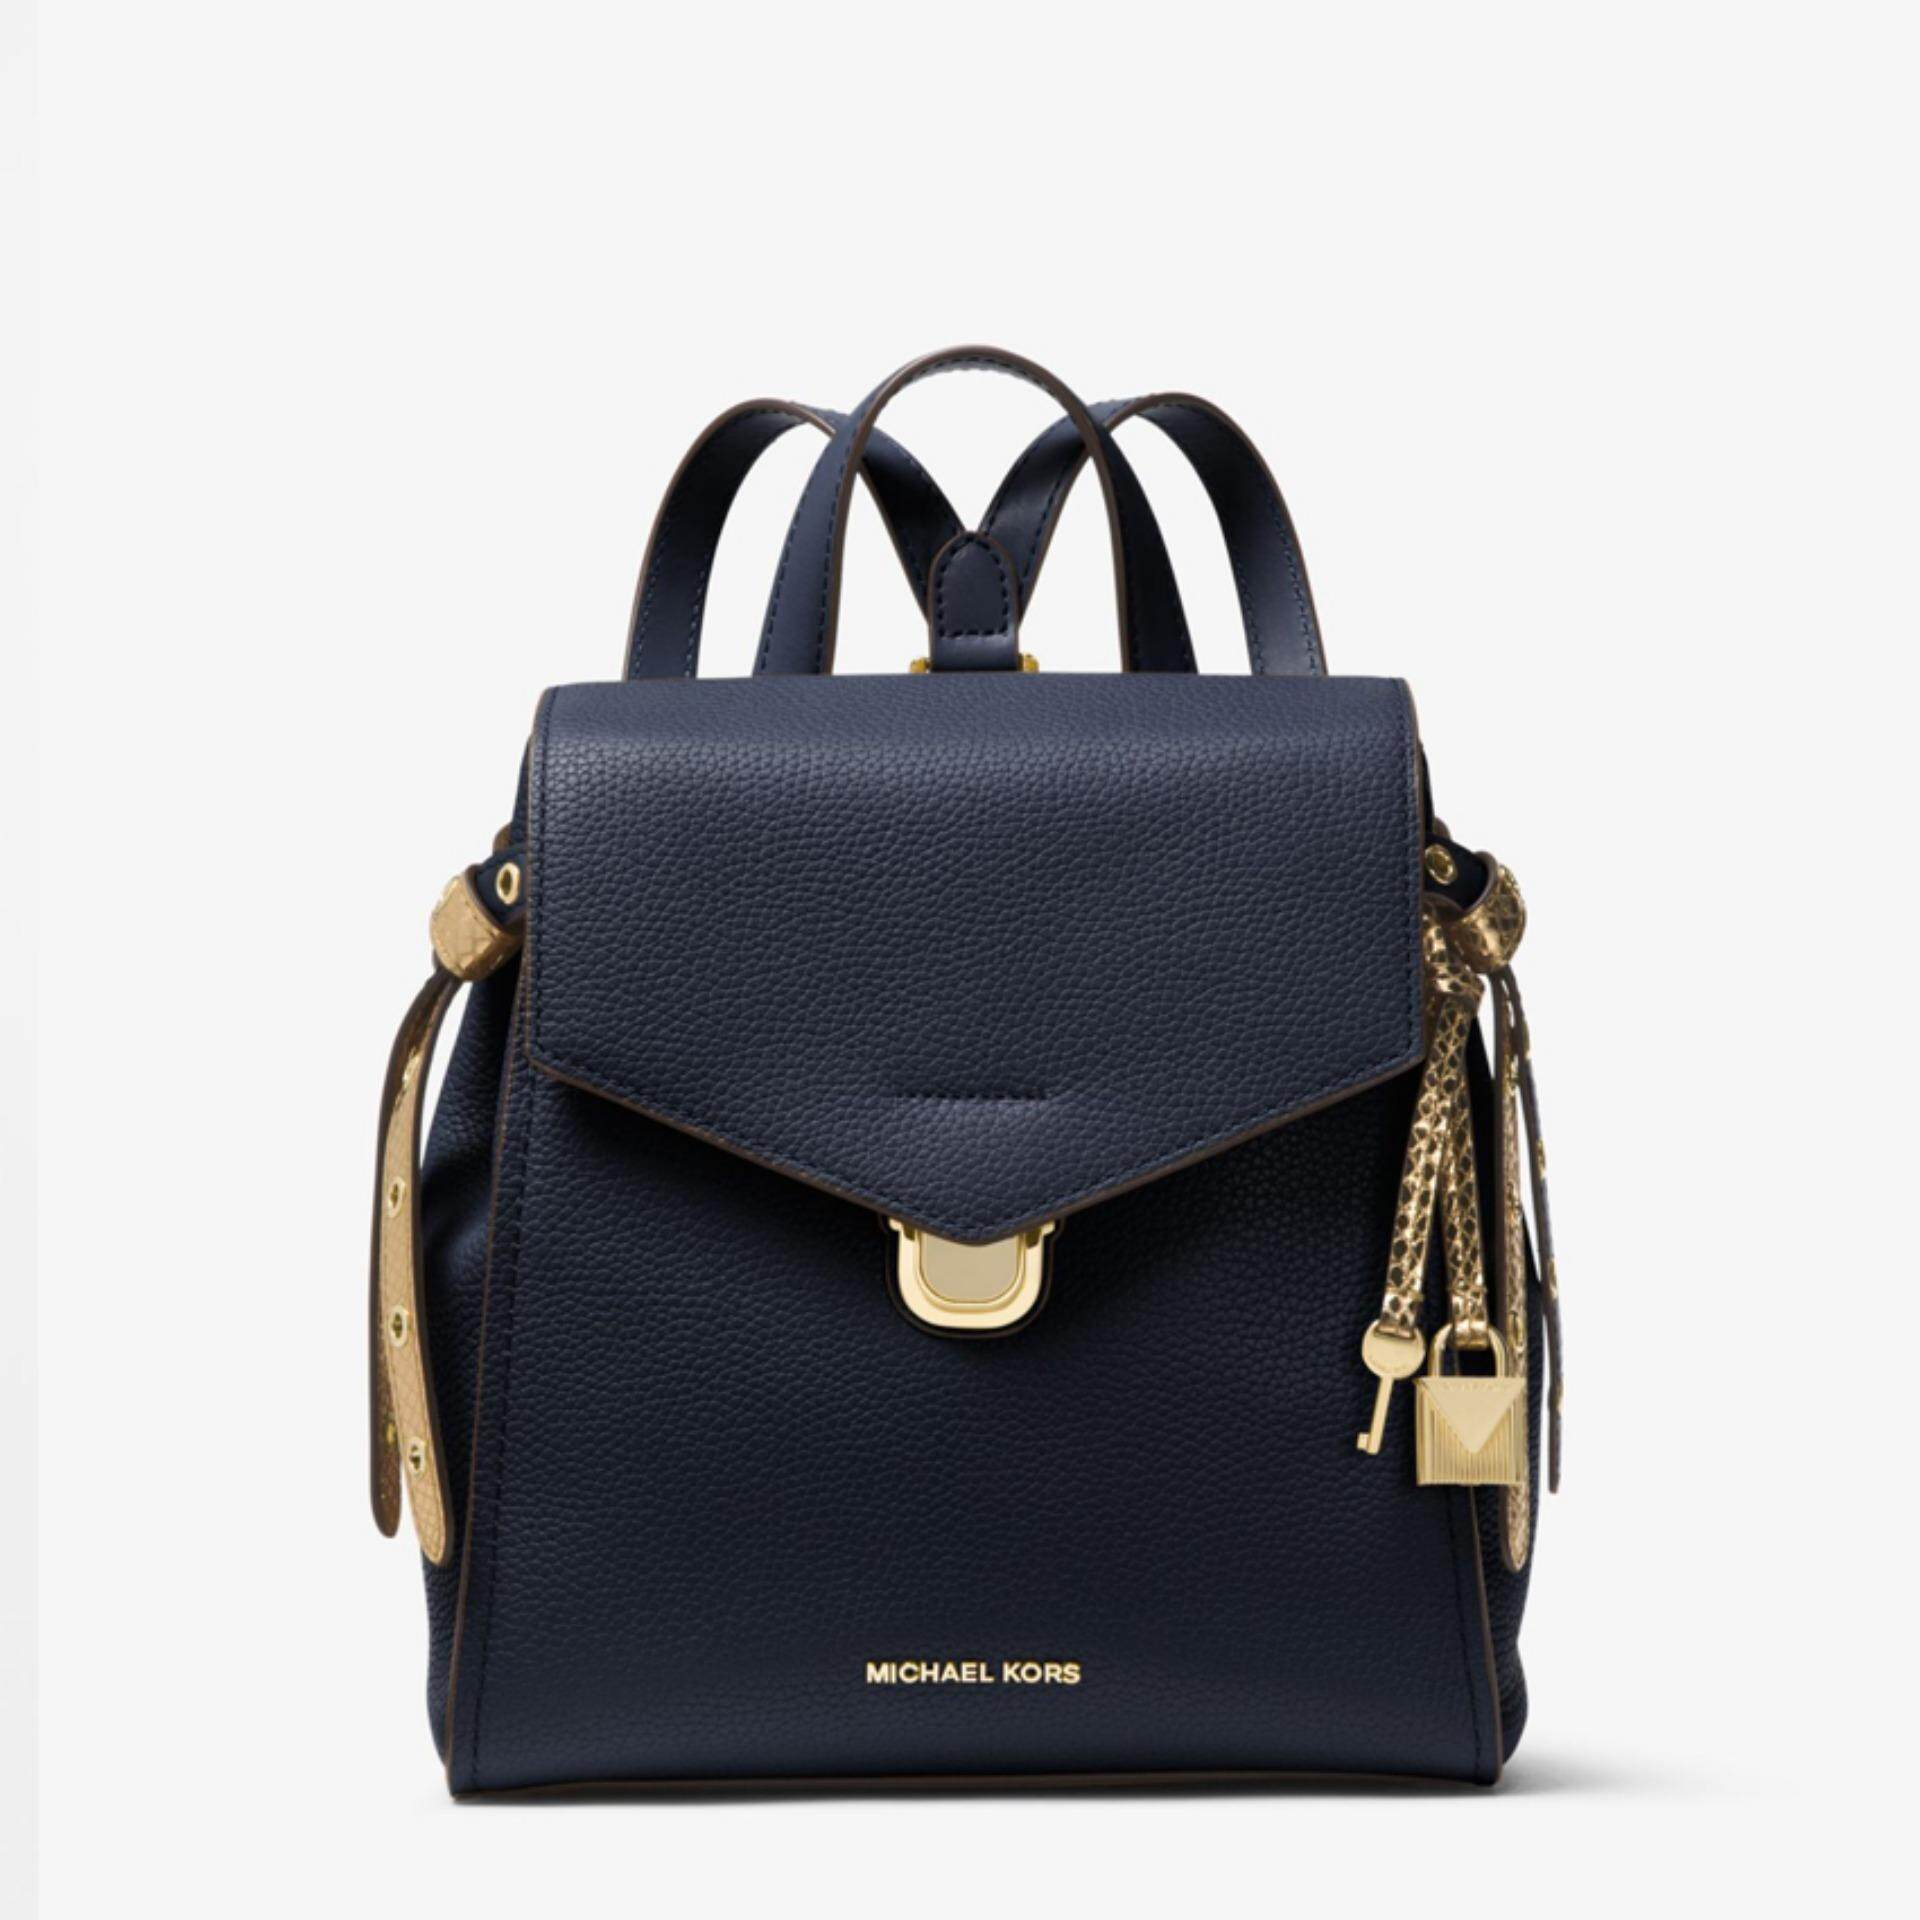 3e36b5fa2a71 Michael Kors Bristol Small Leather Backpack - Navy Blue